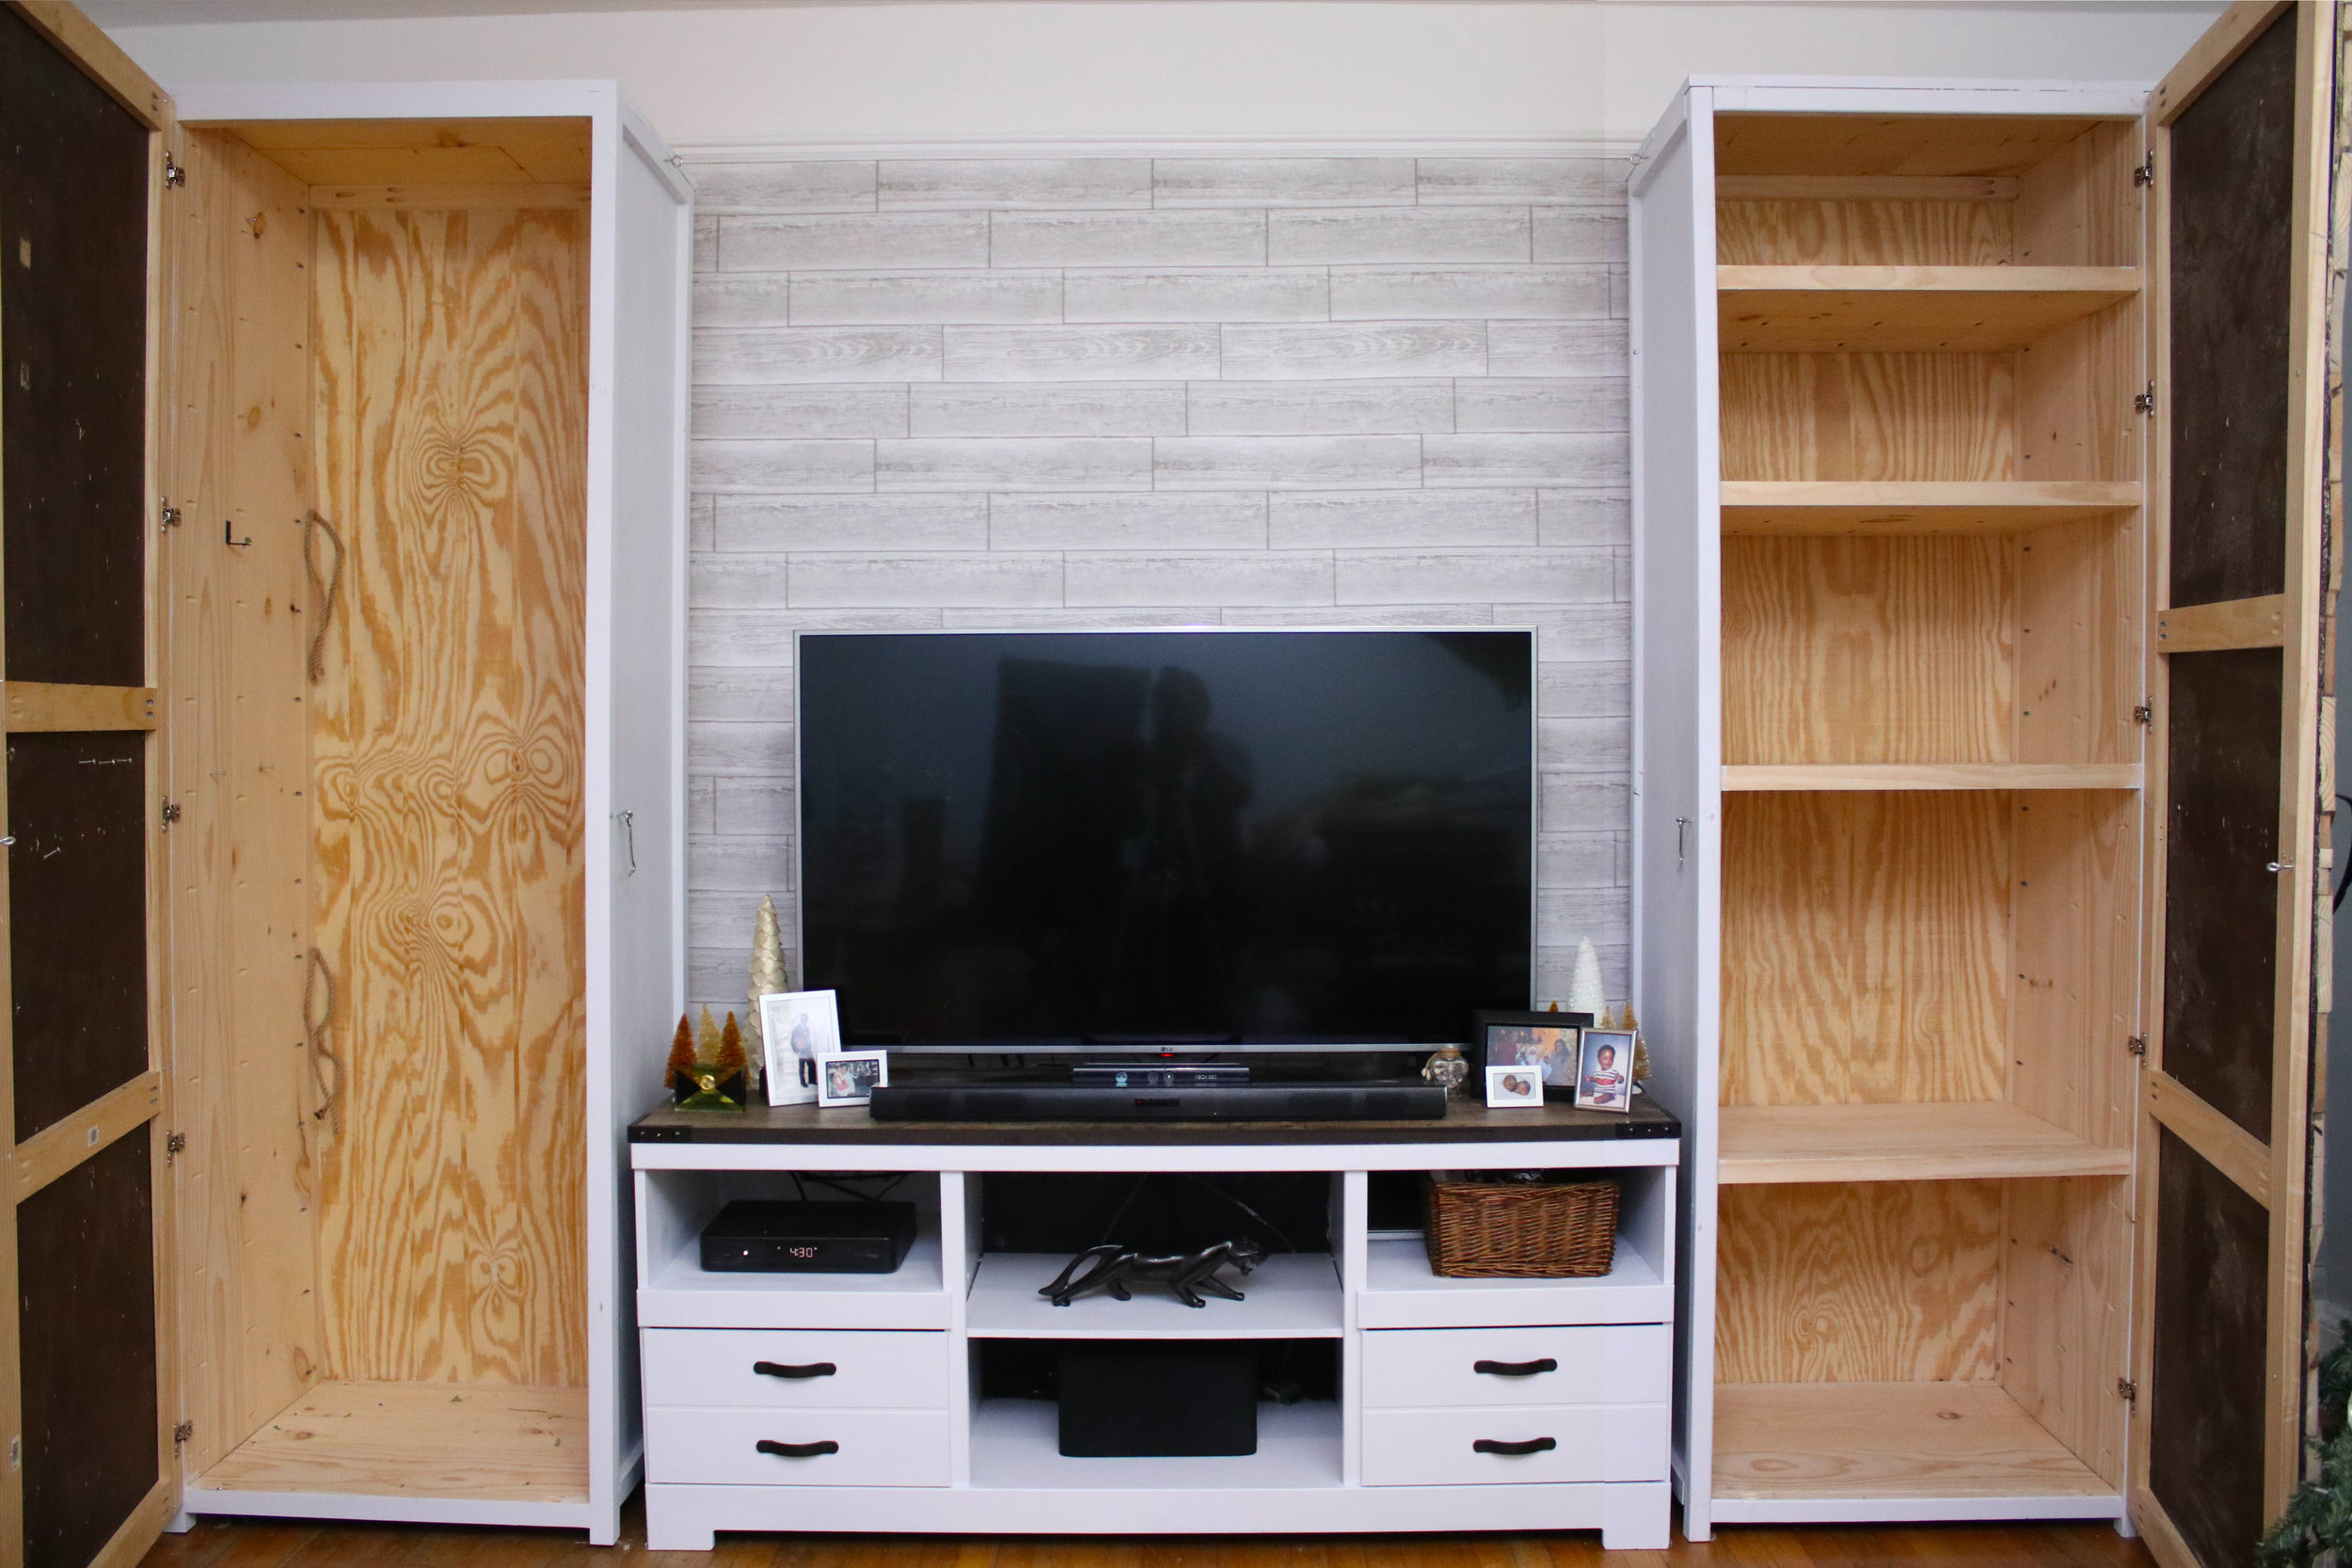 How To Build A Storage Cabinet In 9, How To Build Storage Cabinets For Living Room